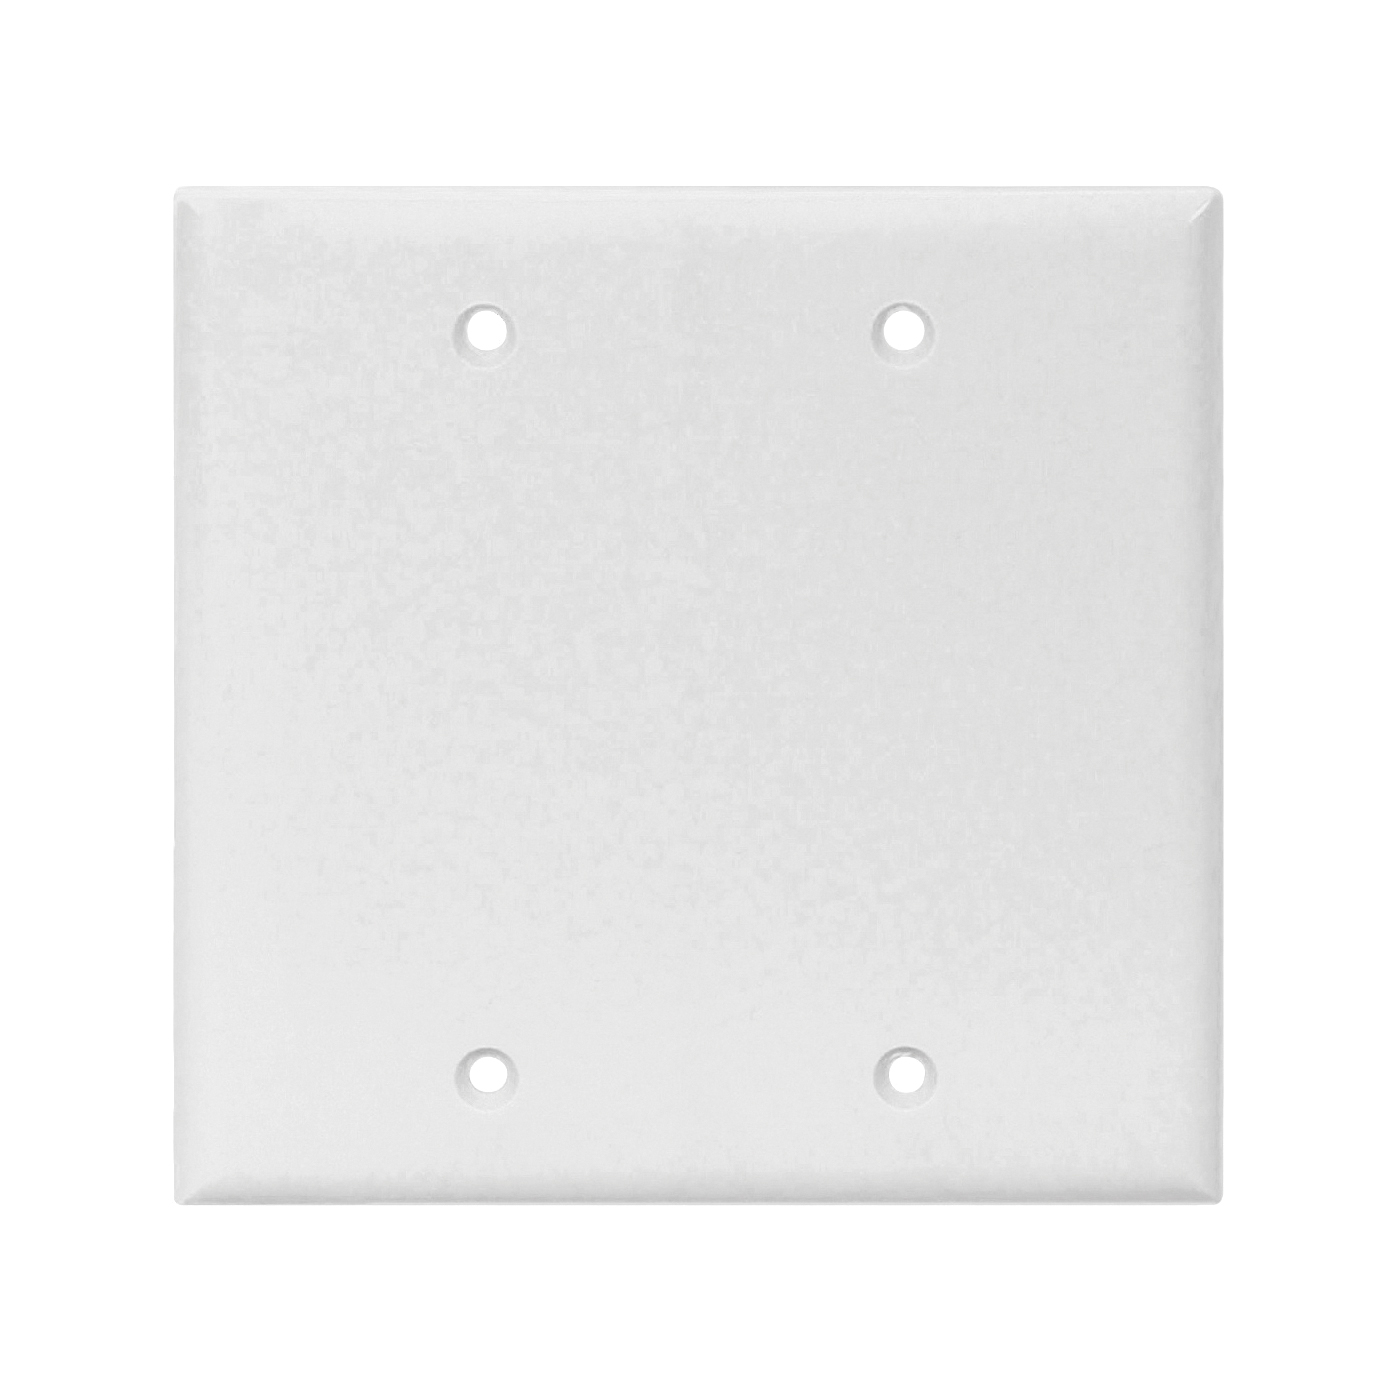 Picture of Eaton Cooper Wiring 2137W-BOX Wallplate, 4-1/2 in L, 4.56 in W, 0.08 in Thick, 2-Gang, Thermoset, White